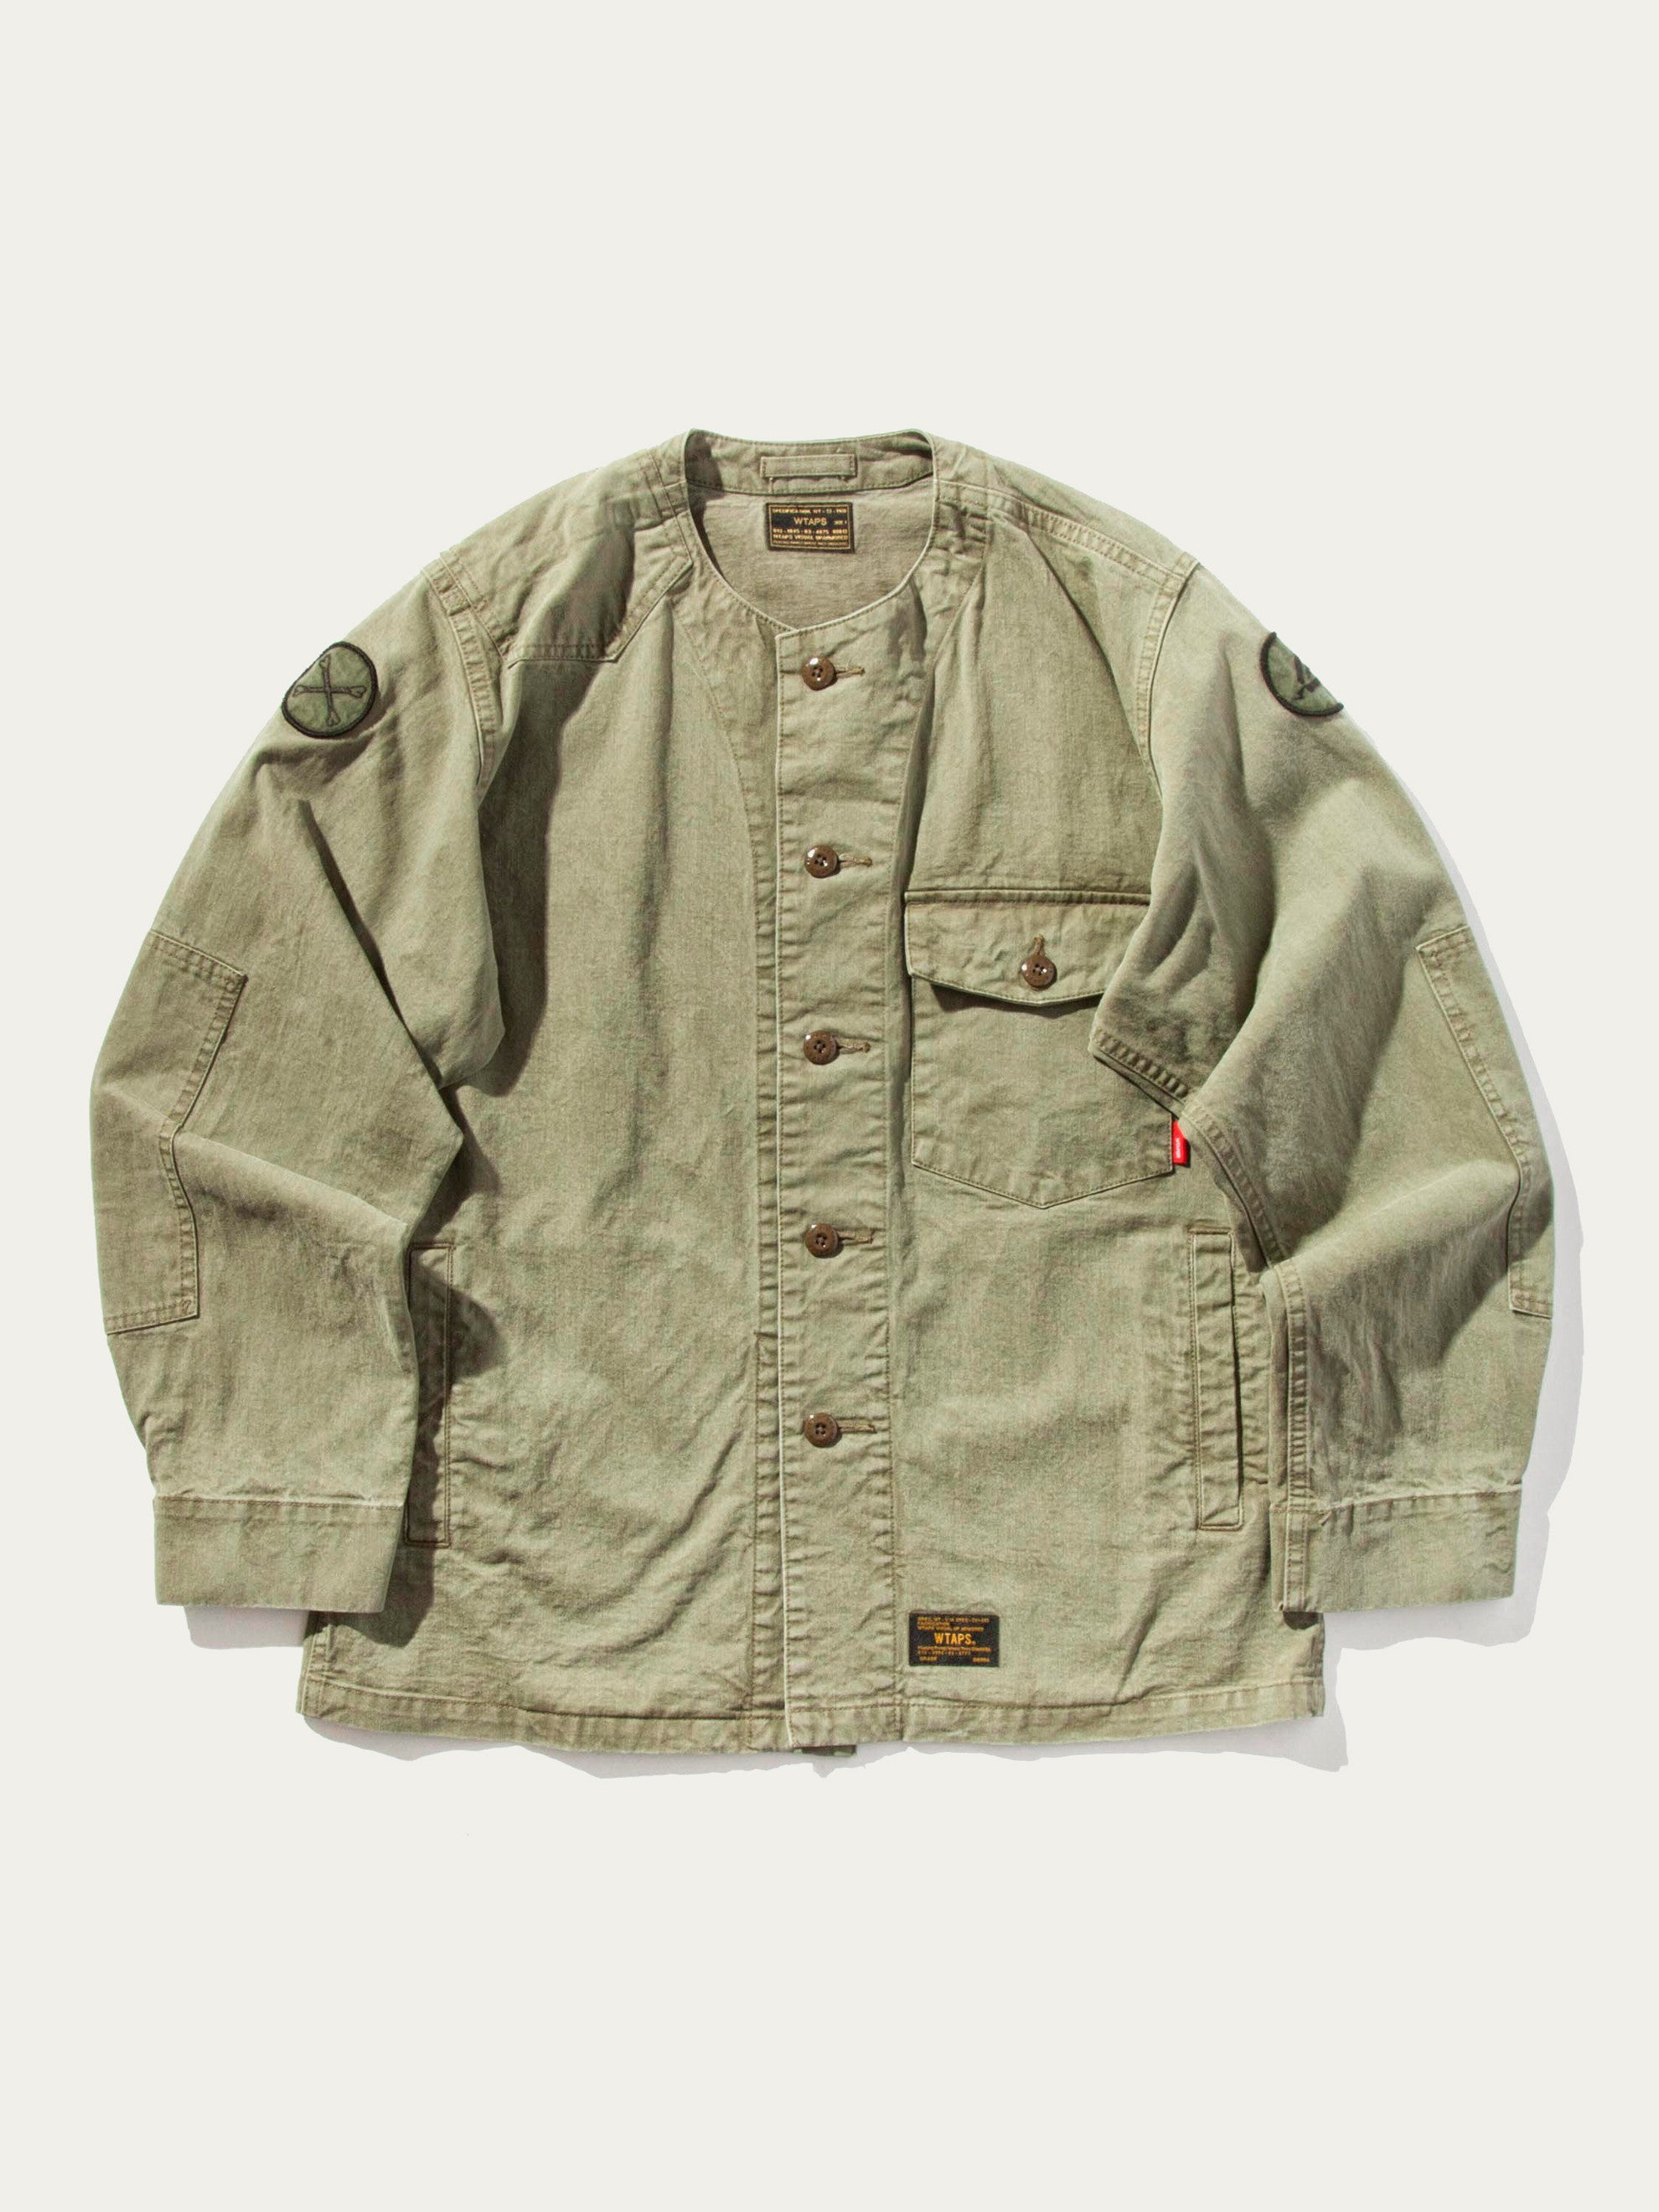 Olive Drab Scout LS 02 Shirt (Cotton Chino) 7